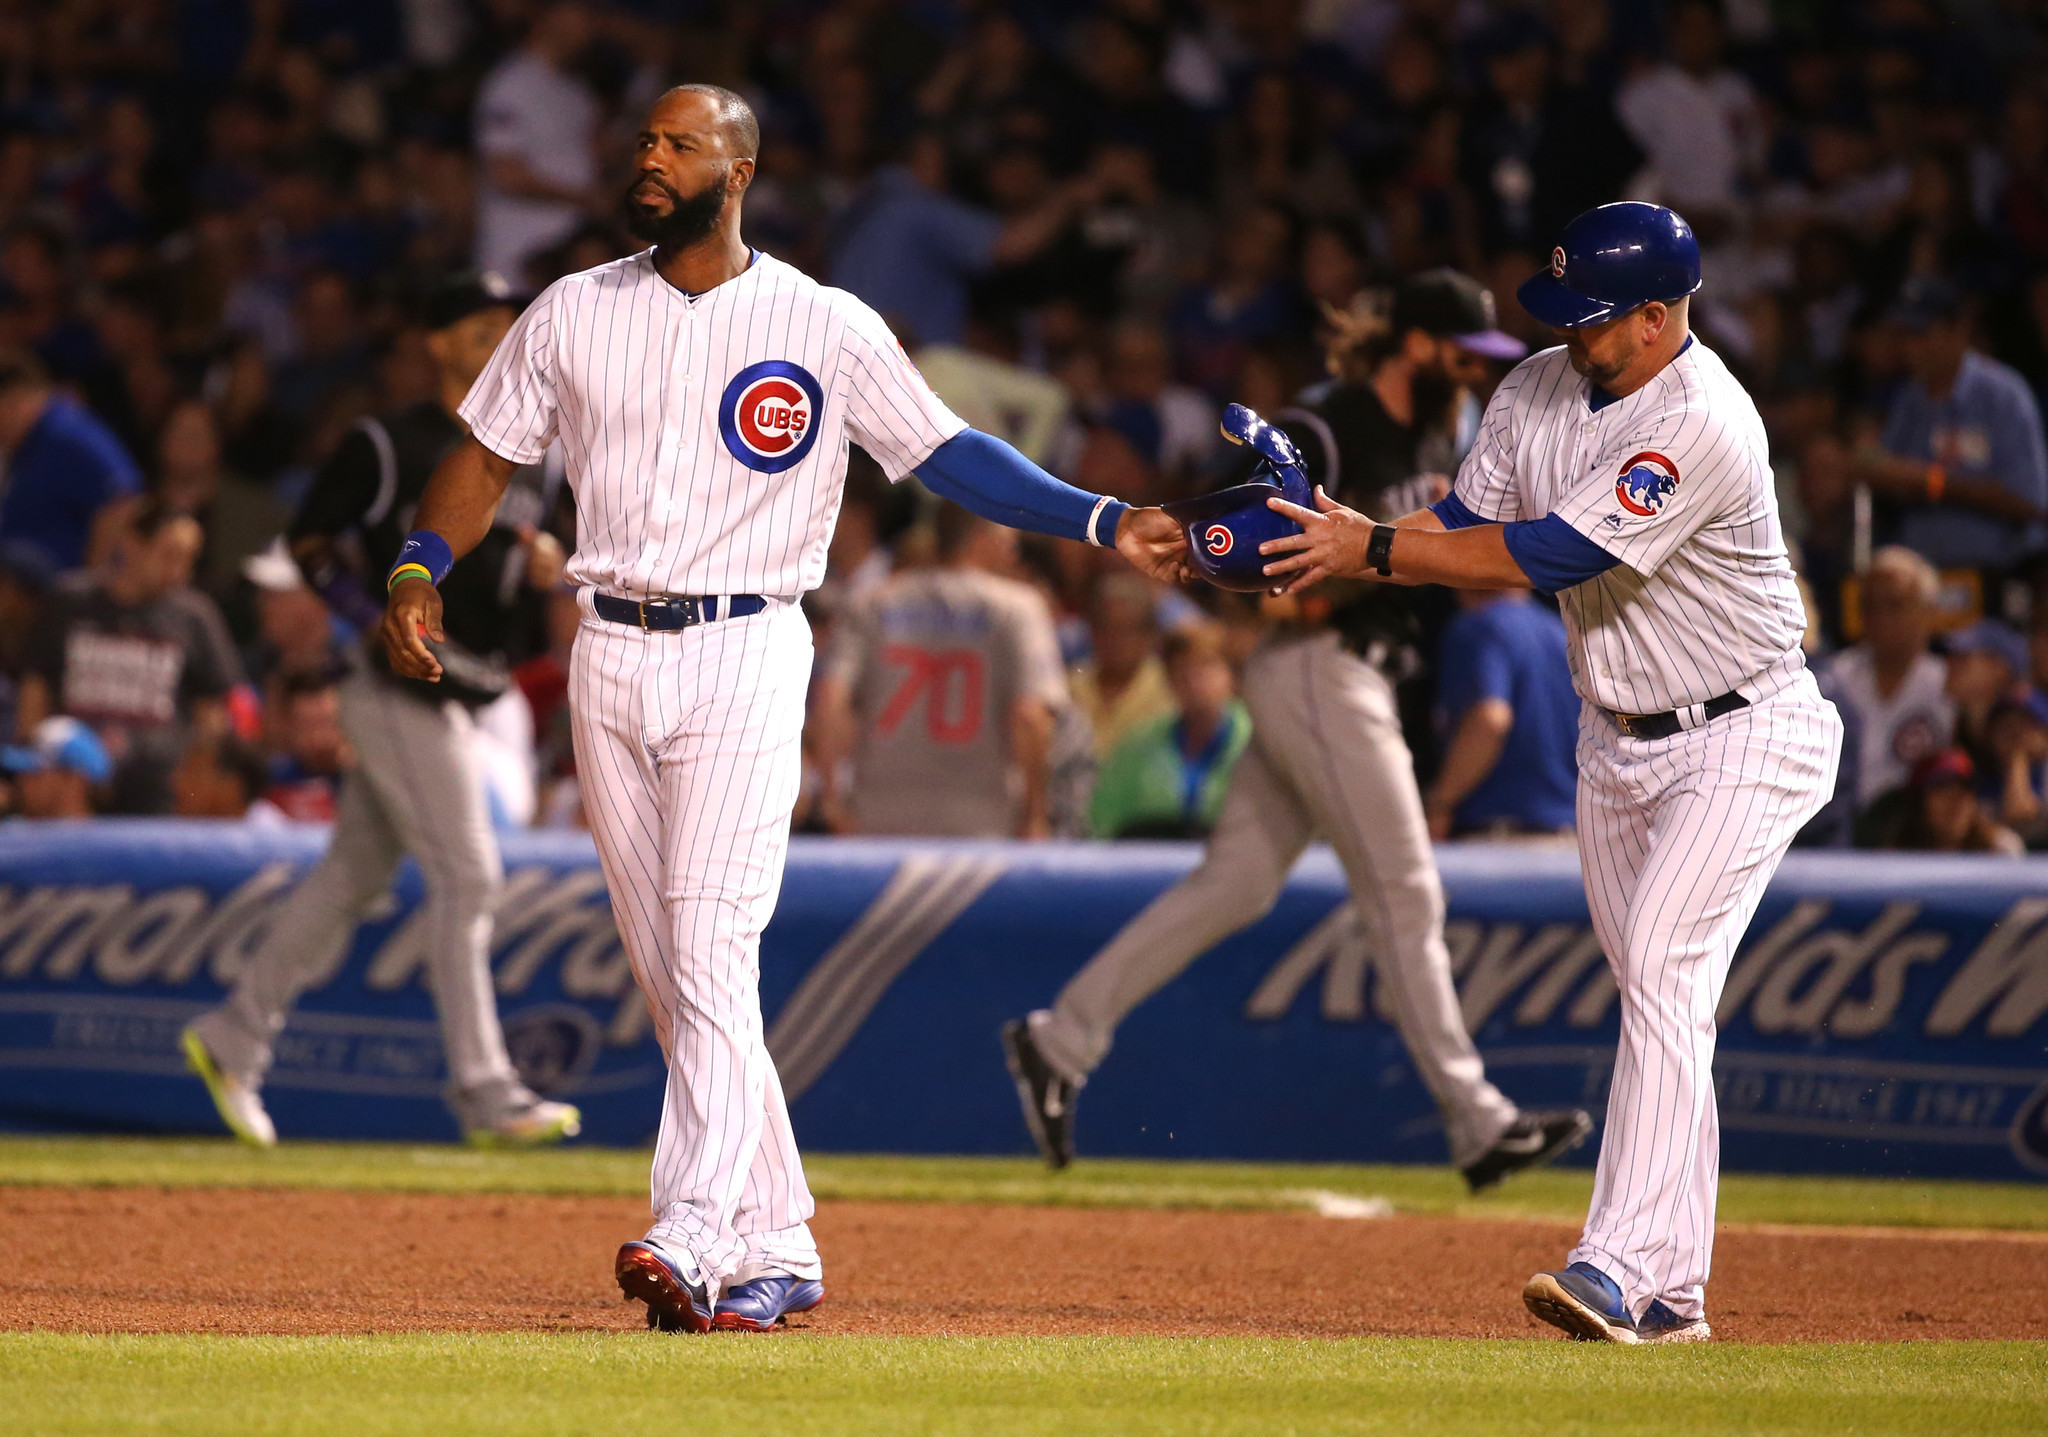 Ct-notes-cubs-padres-spt-0622-20170621